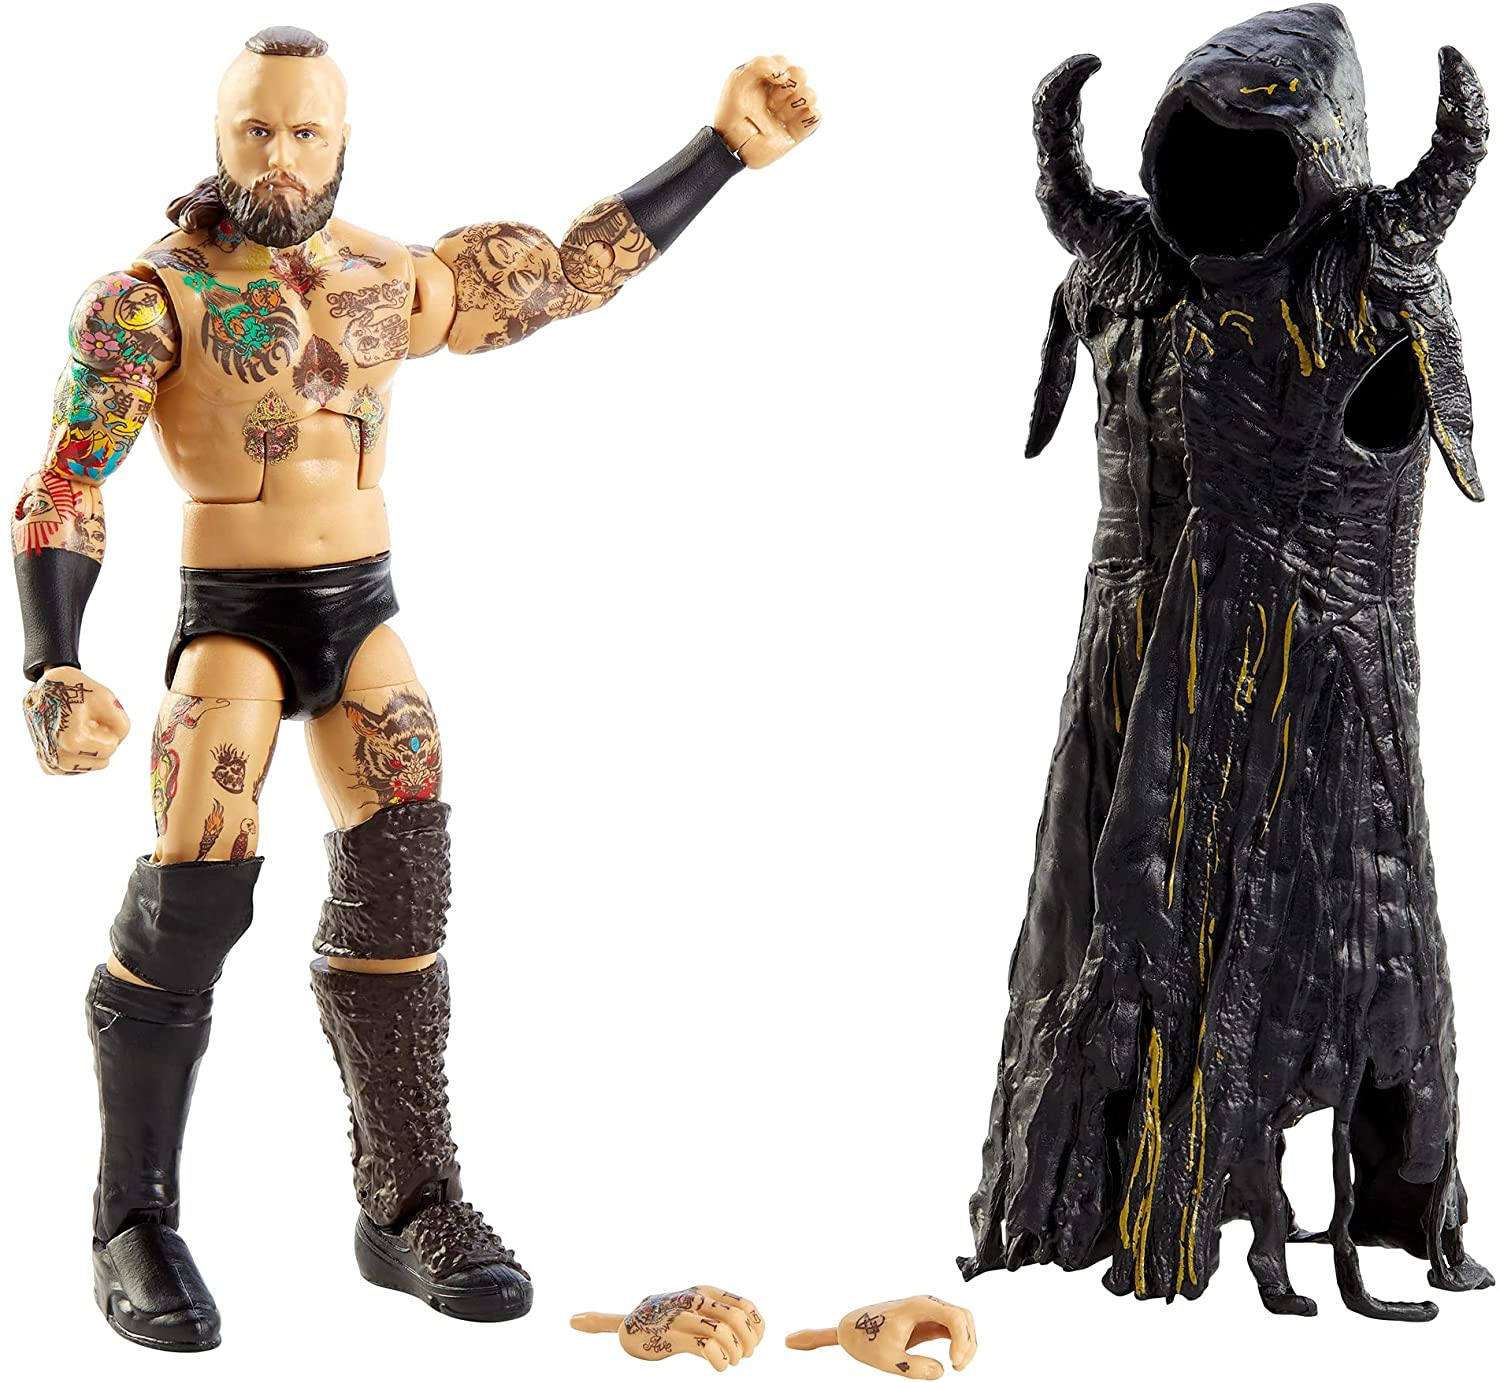 WWE Aleister Black Elite Collection Action Figure, 6-in/15.24-cm Posable...